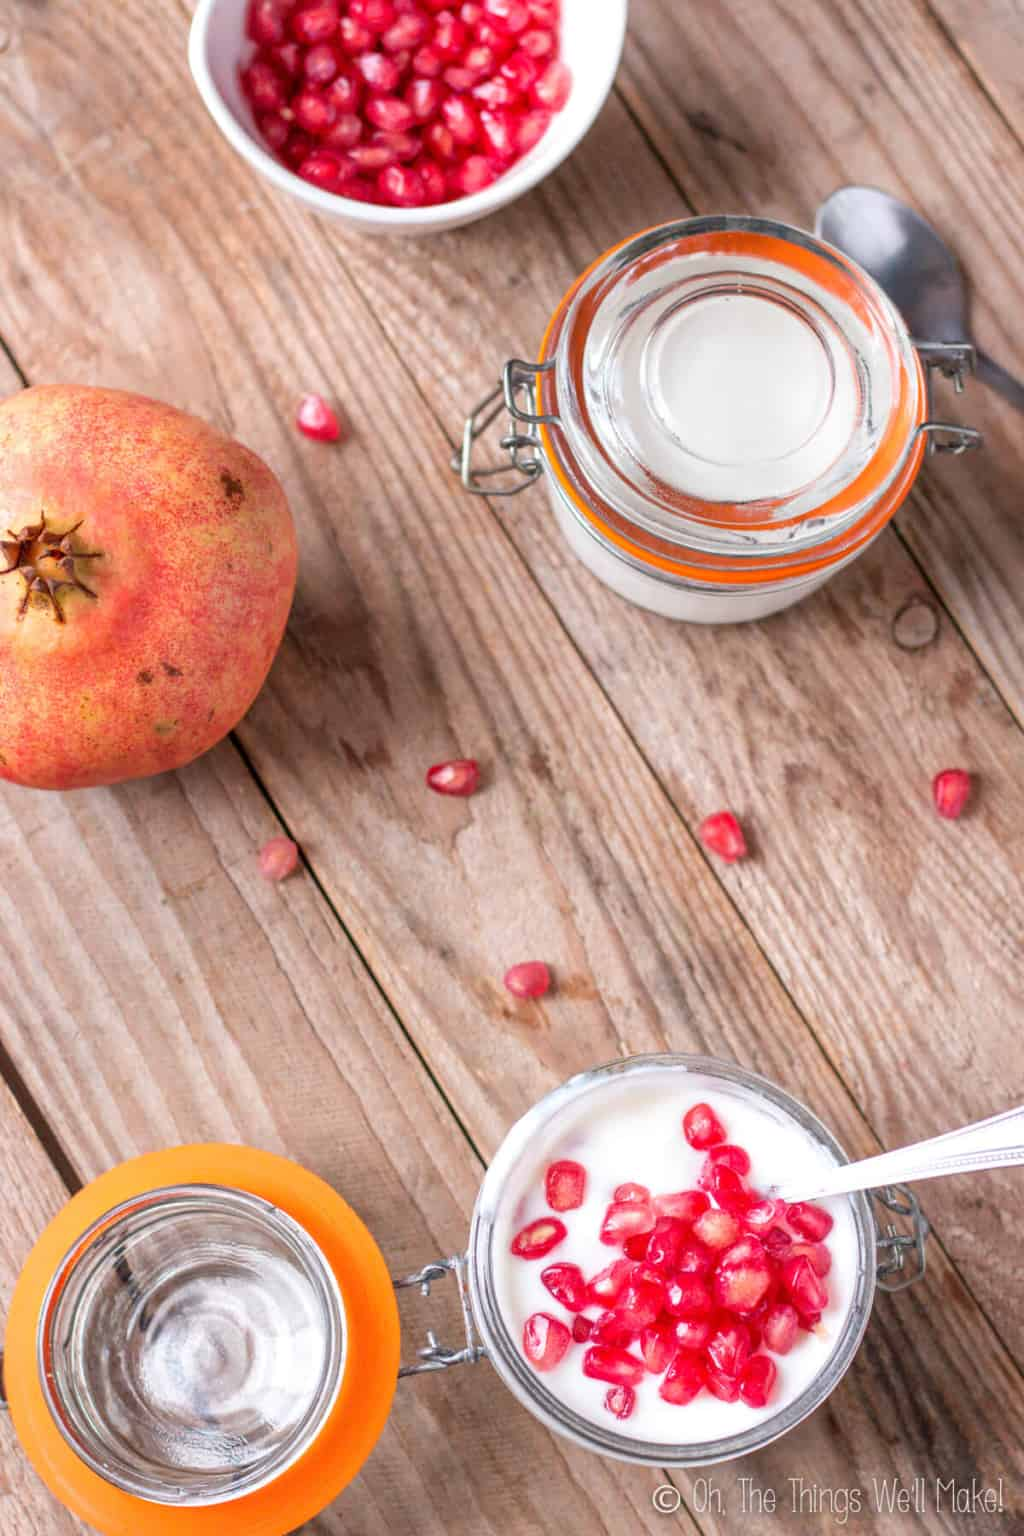 Overhead view of two jars of homemade yogurt on a wood surface. Bottom jar is open and has a spoon inside it with fresh pomegranate topping it. Top jar is closed and is beside a pomegranate fruit and a bowl full of pomegranate seeds.